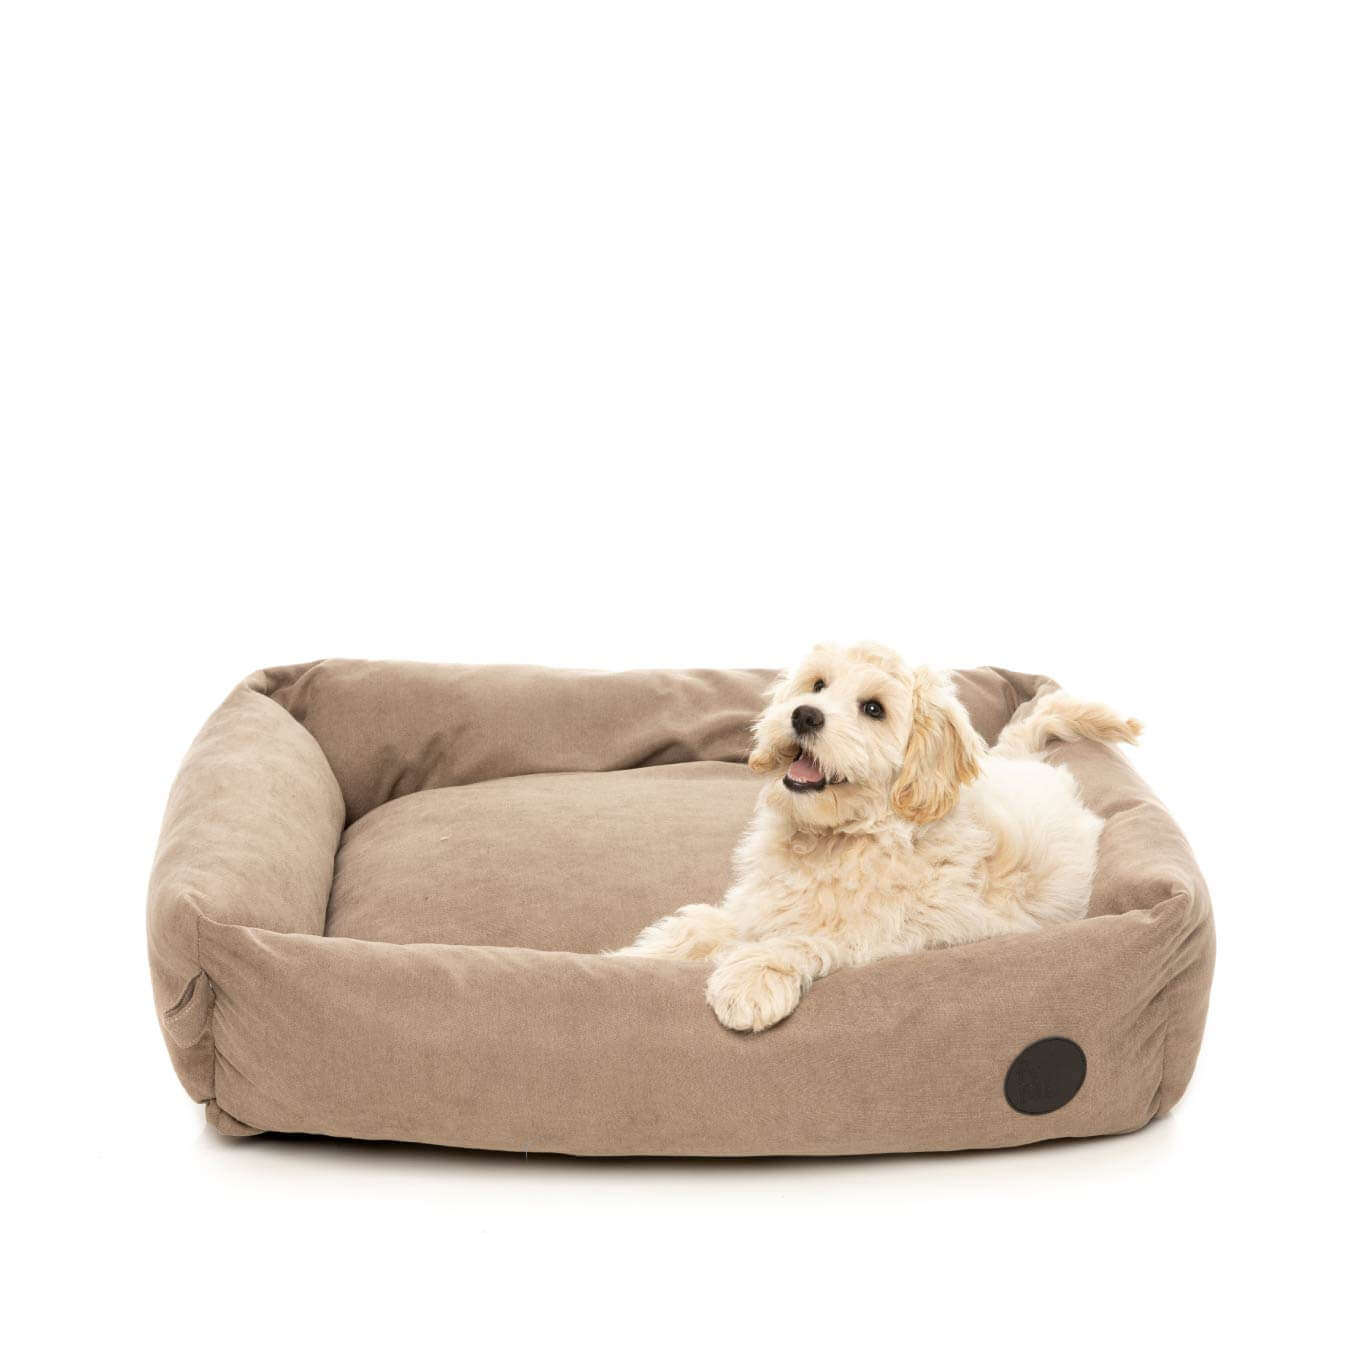 FuzzYard The Lounge Bed in Mocha - Vanillapup Online Pet Store